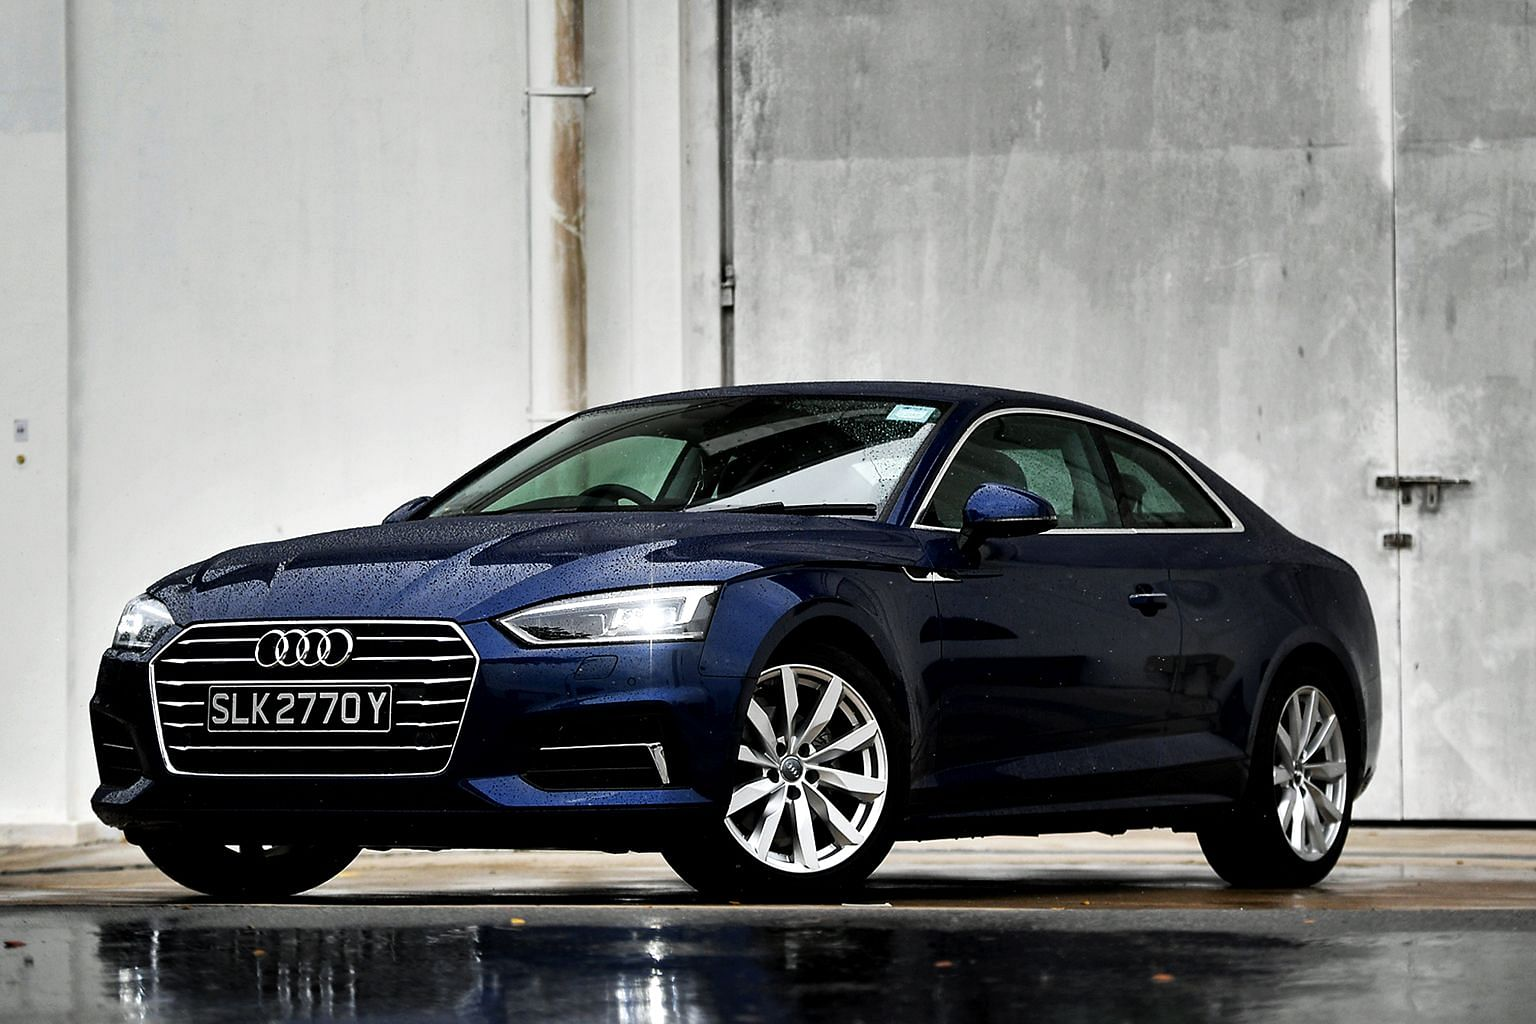 The Audi A5 Coupe 2.0 is a relaxed and comfortable grand tourer, with uncommon efficiency.